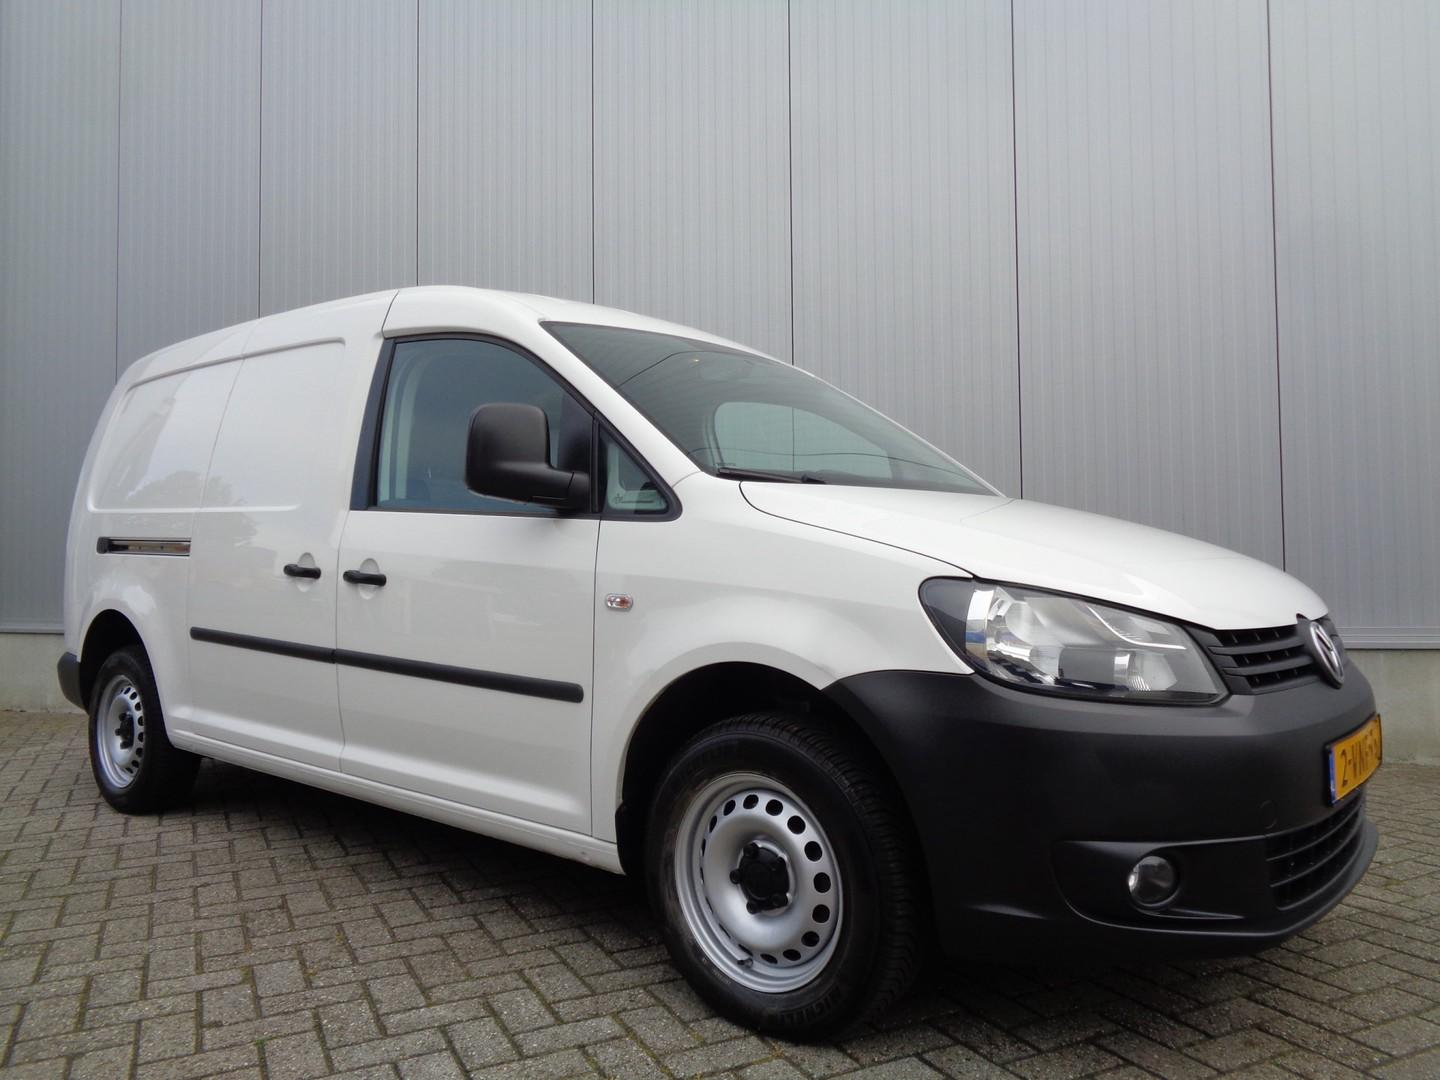 Volkswagen Caddy 1.6 tdi maxi, airco, cruise, automaat!